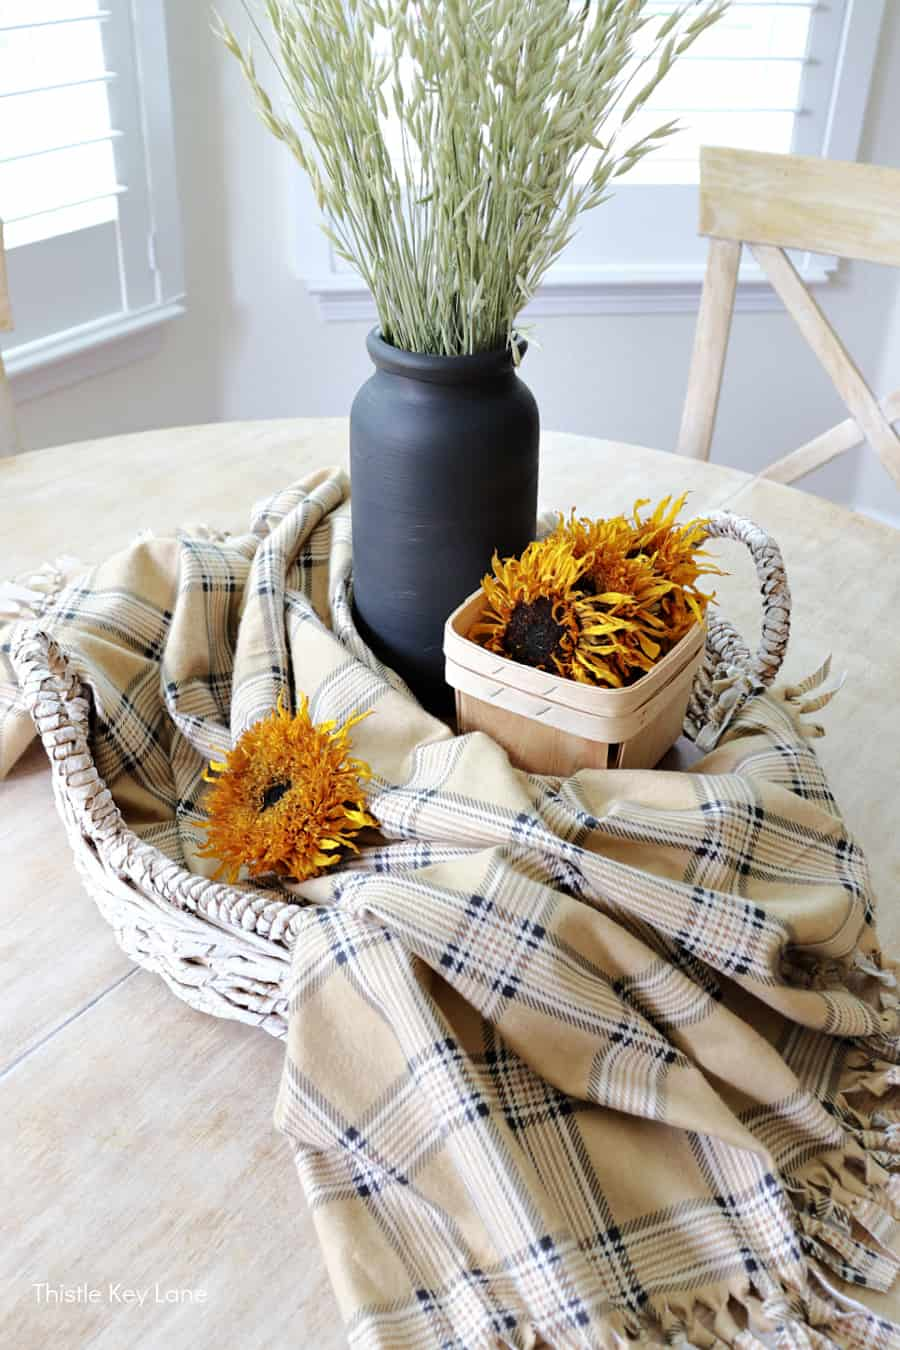 Plaid throw draped across a woven tray. How To Make A Plaid Table Throw.